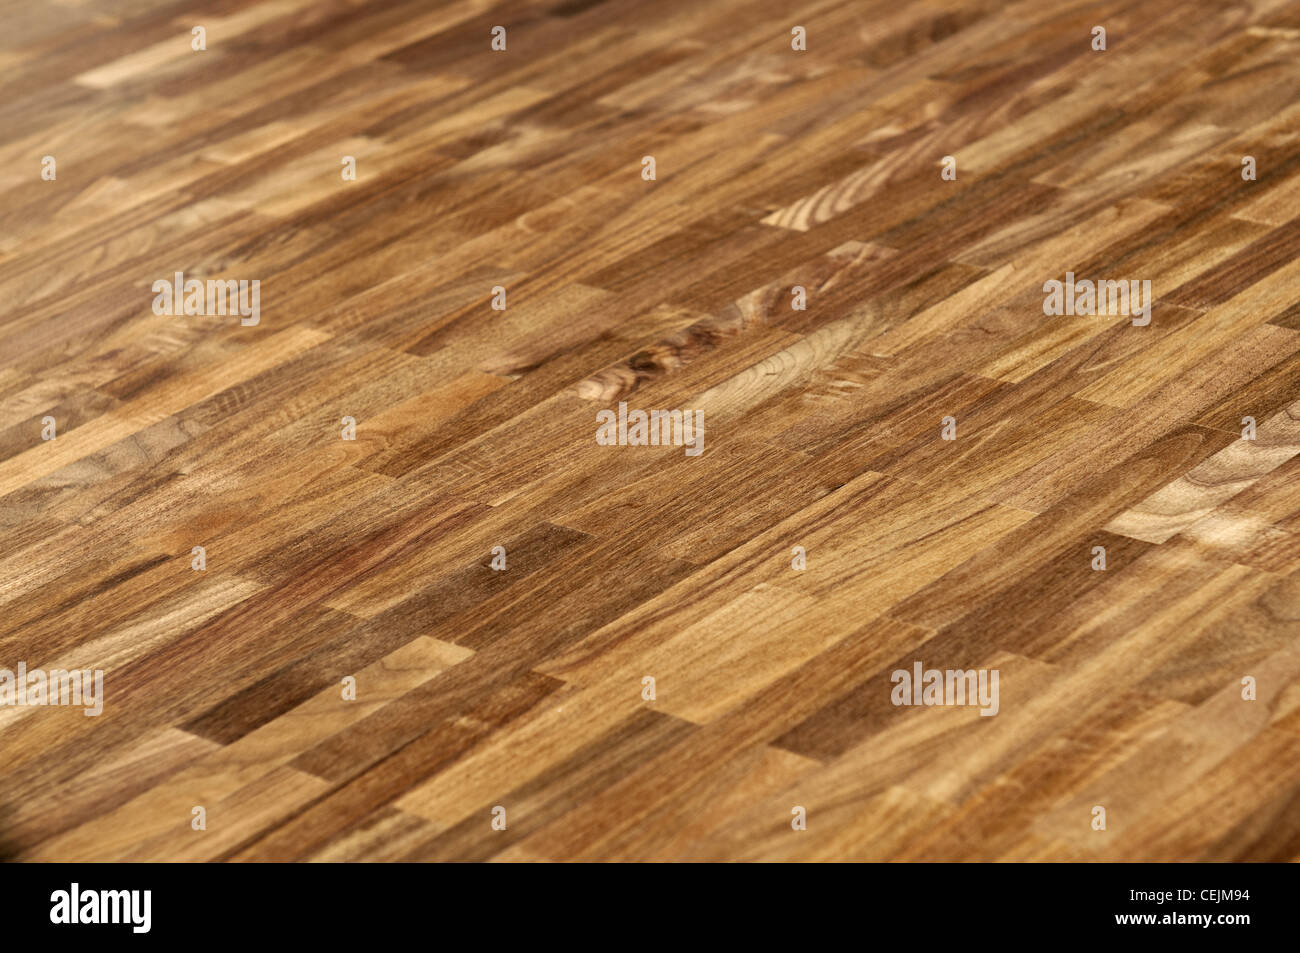 Wood texture - parquet floor made of the natural american walnut wood. - Stock Image